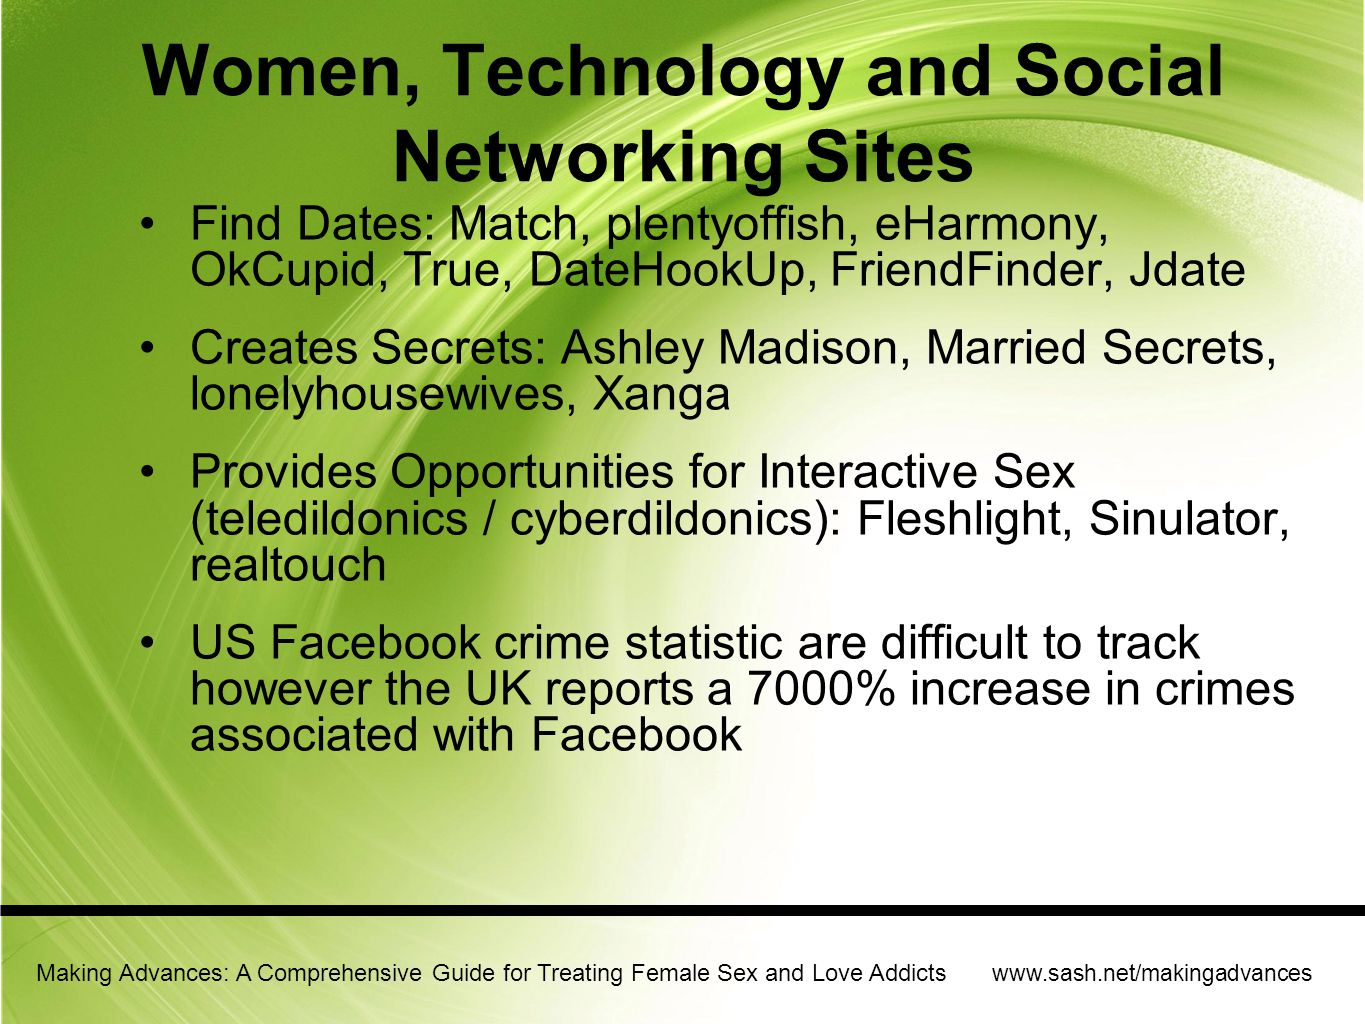 Women, Technology and Social Networking Sites